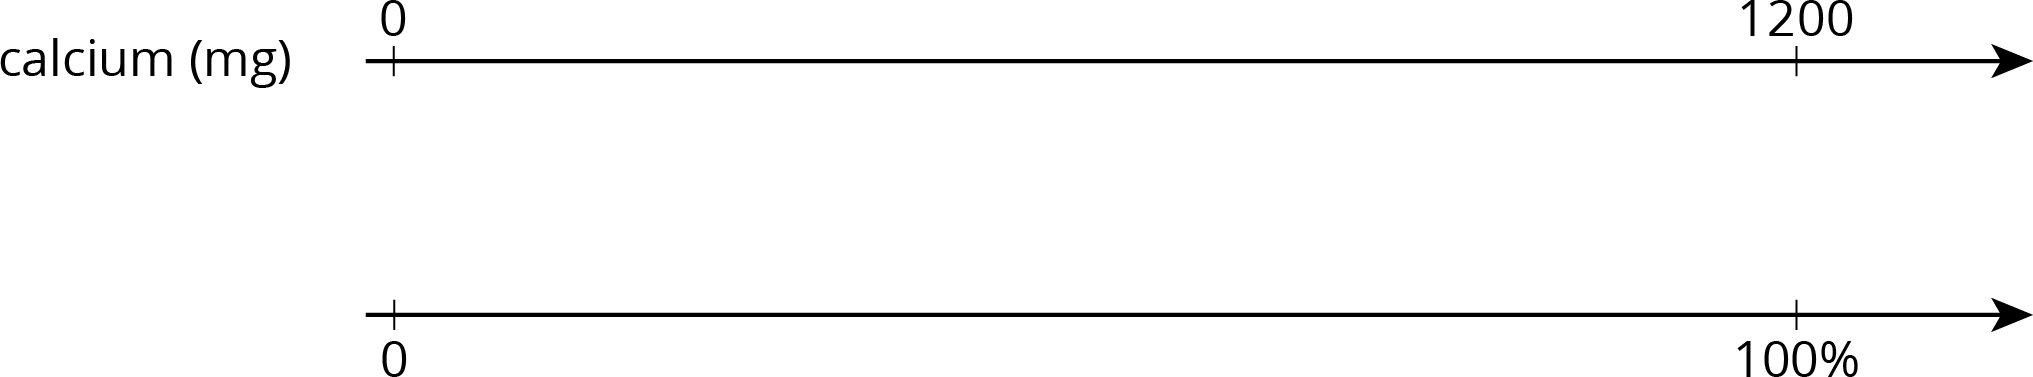 "A double number line with 2 tick marks at either end of the line. The top number line is labeled ""calcium in milligrams"" and the tick marks are labeled 0 and 1200. The bottom number line is not labeled and the tick marks are labeled 0 and 100 percent."